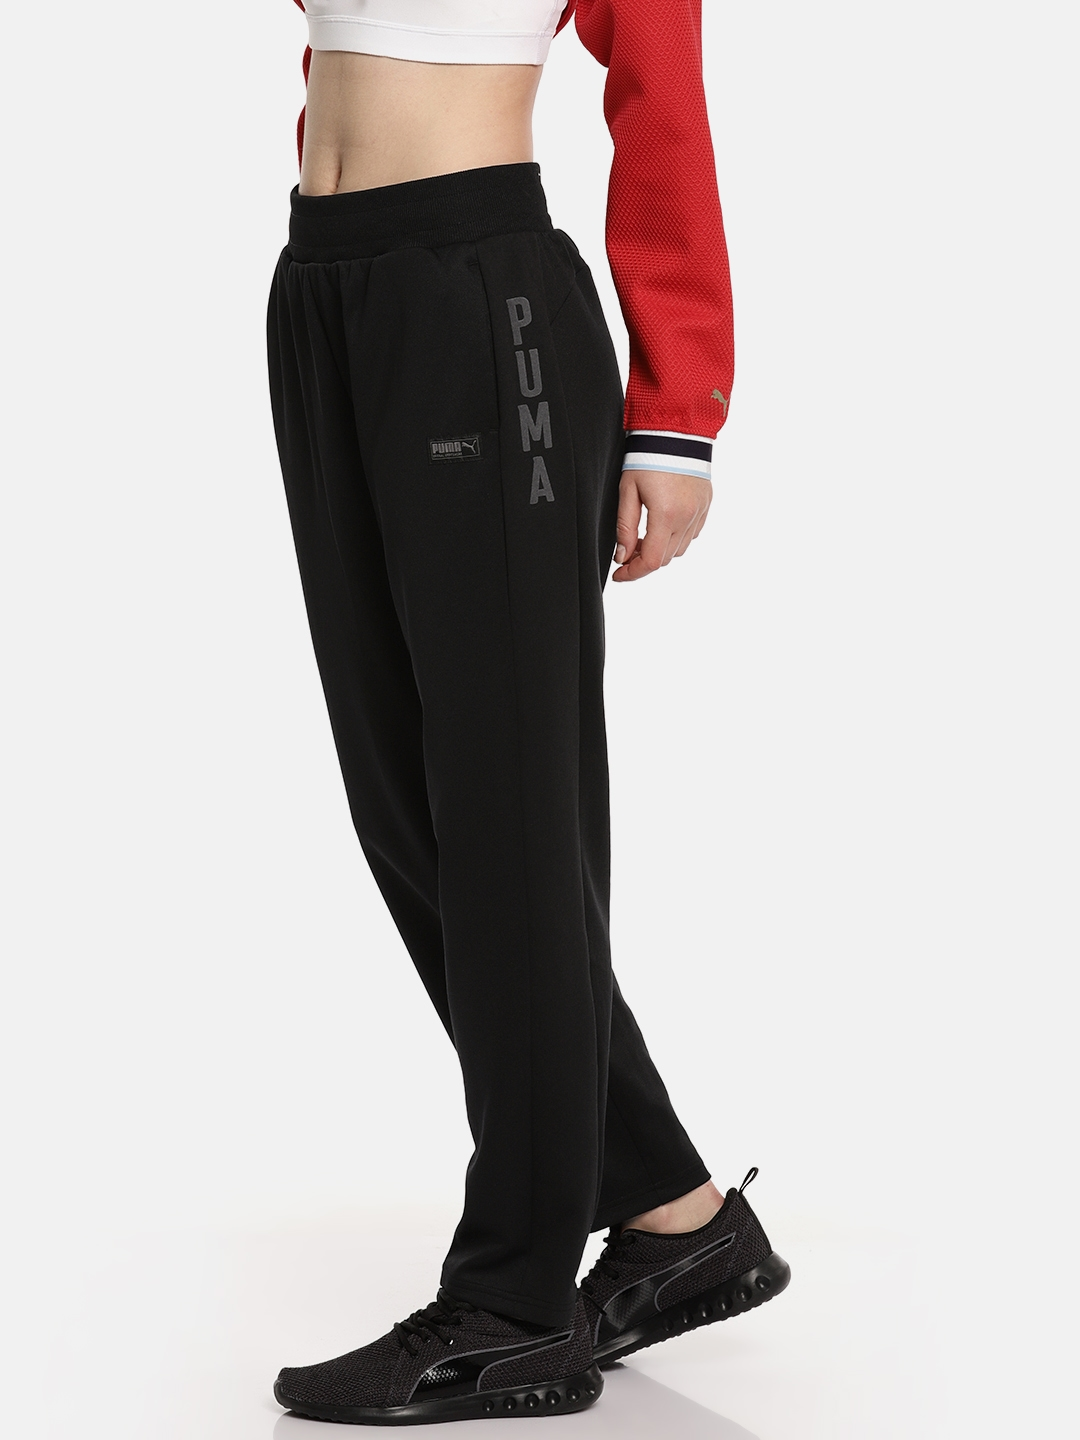 cb0e0fd31b08 Buy Puma Womenen Black Relaxed Fit Fusion Track Pants - Track Pants ...